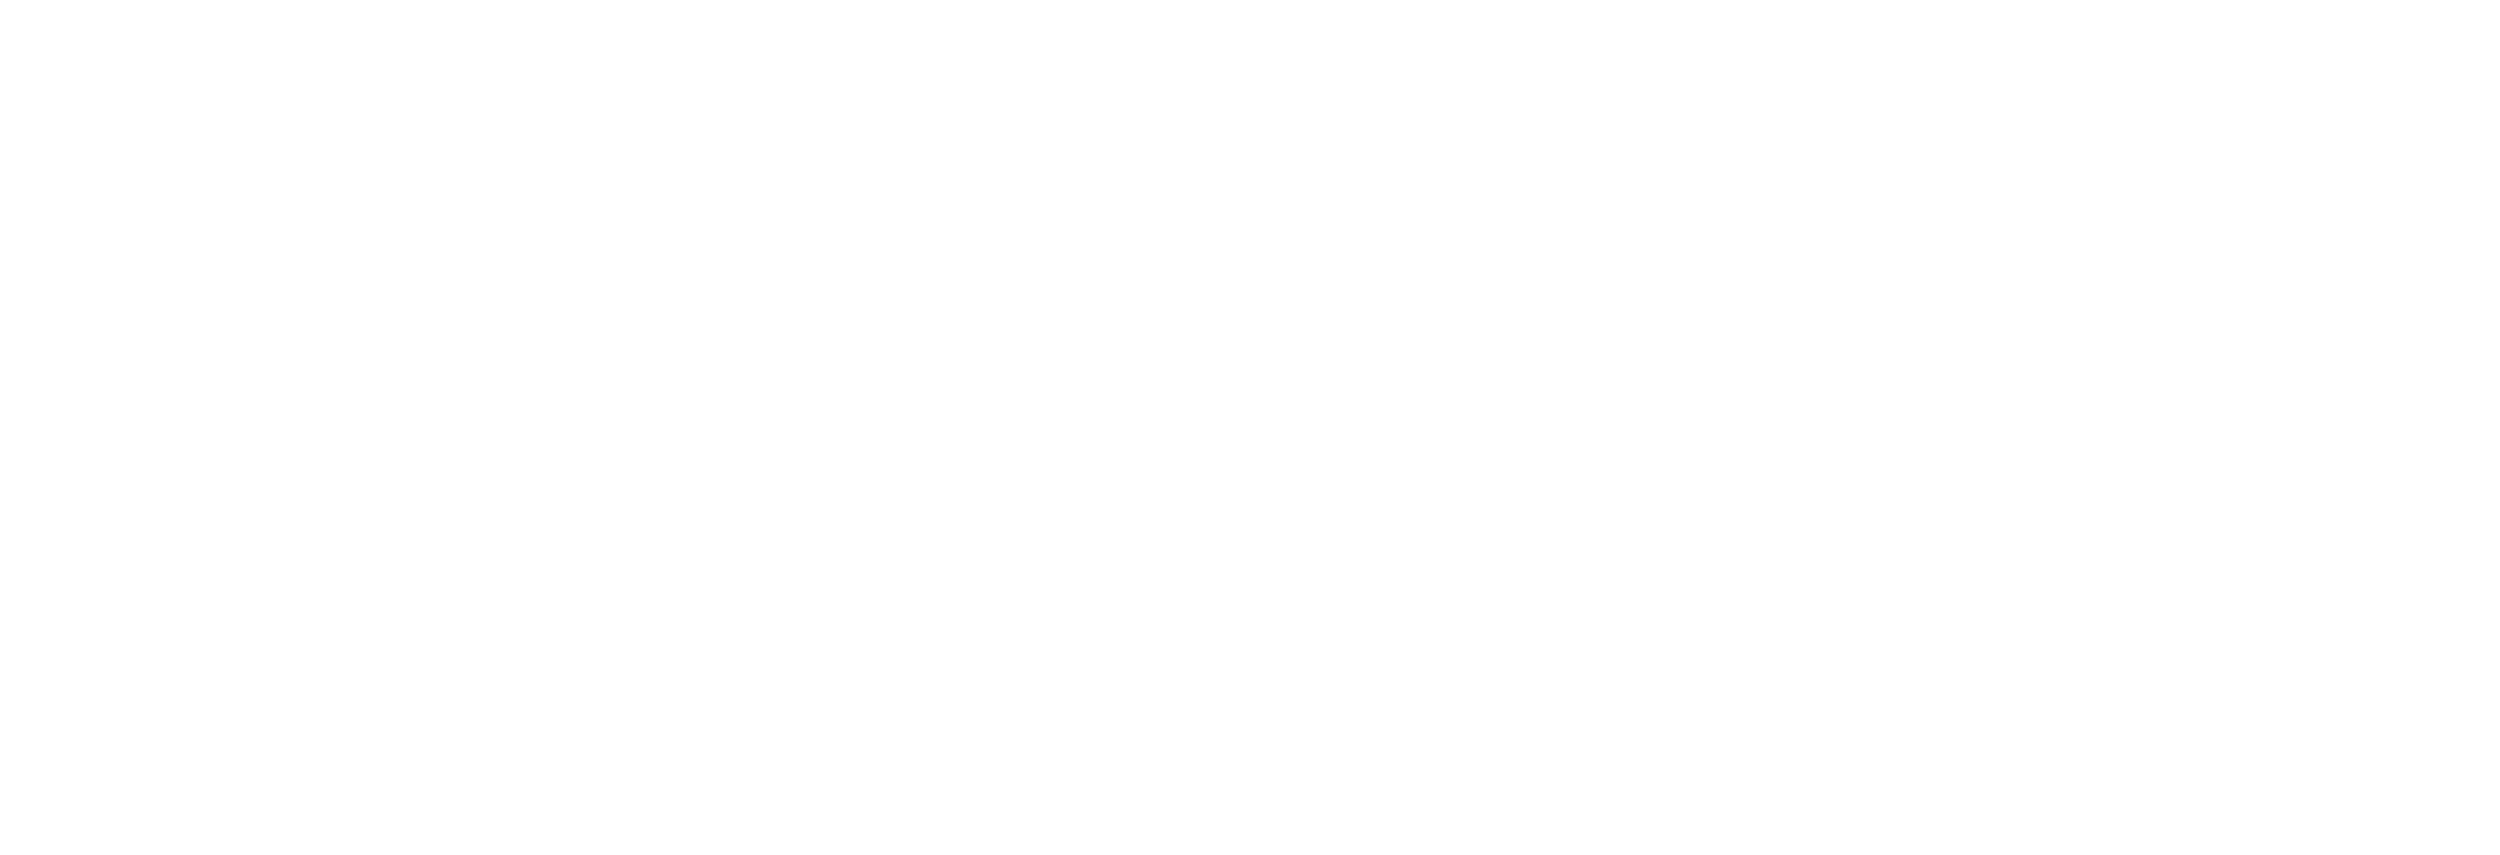 DOWNLOAD THE APP-logo-white.png